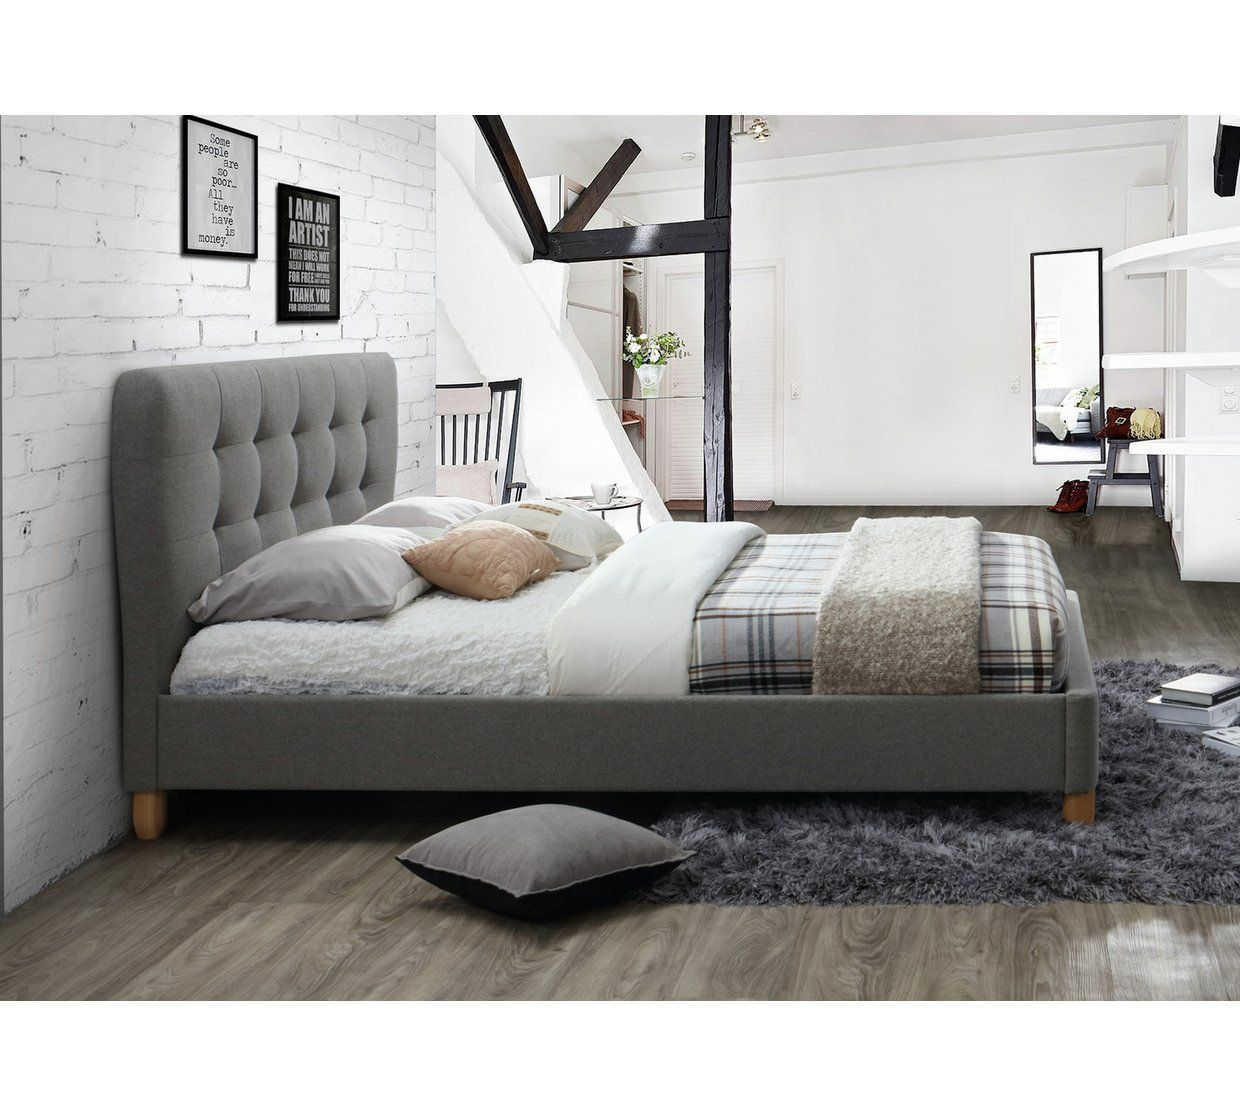 Buy Birlea Stockholm Small Double Bed Frame Grey Bed Frames Argos Grey Bed Frame Grey Upholstered Bed Upholstered Bed Frame